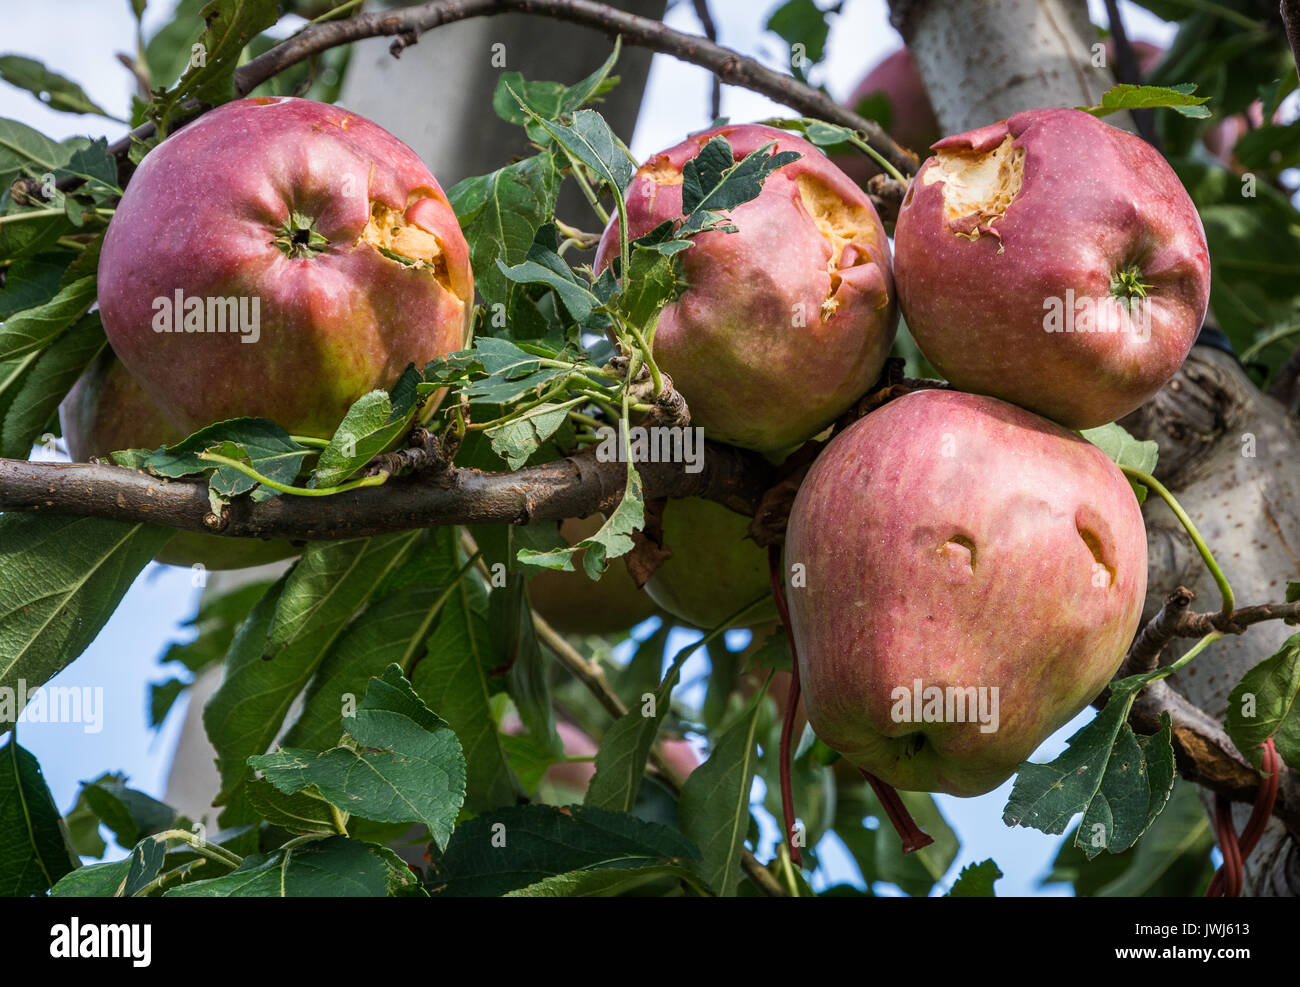 apples damaged by hail storm. the hailstorms have almost entirely wiped out harvest. - Stock Image